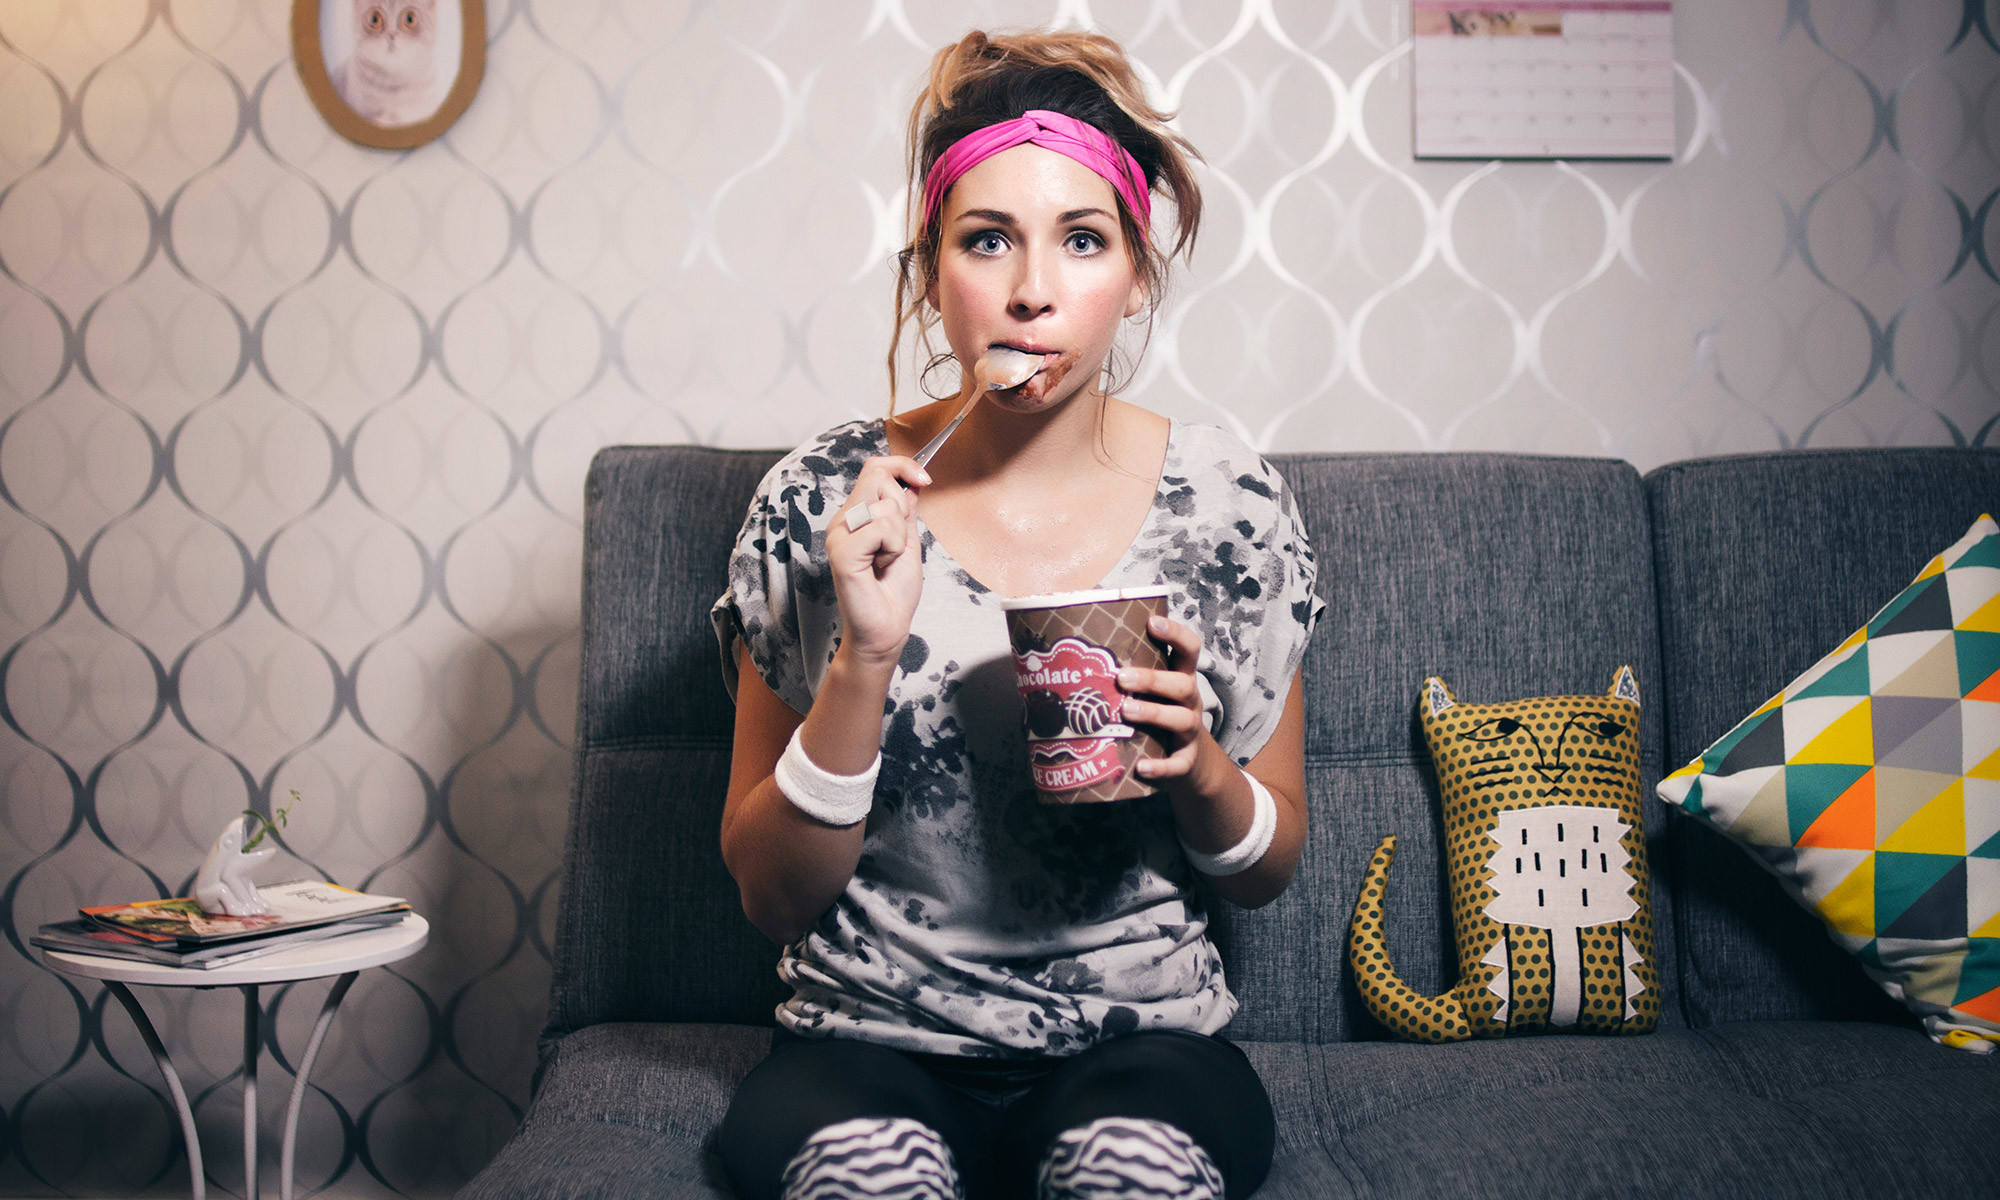 Girl on couch eating ice cream